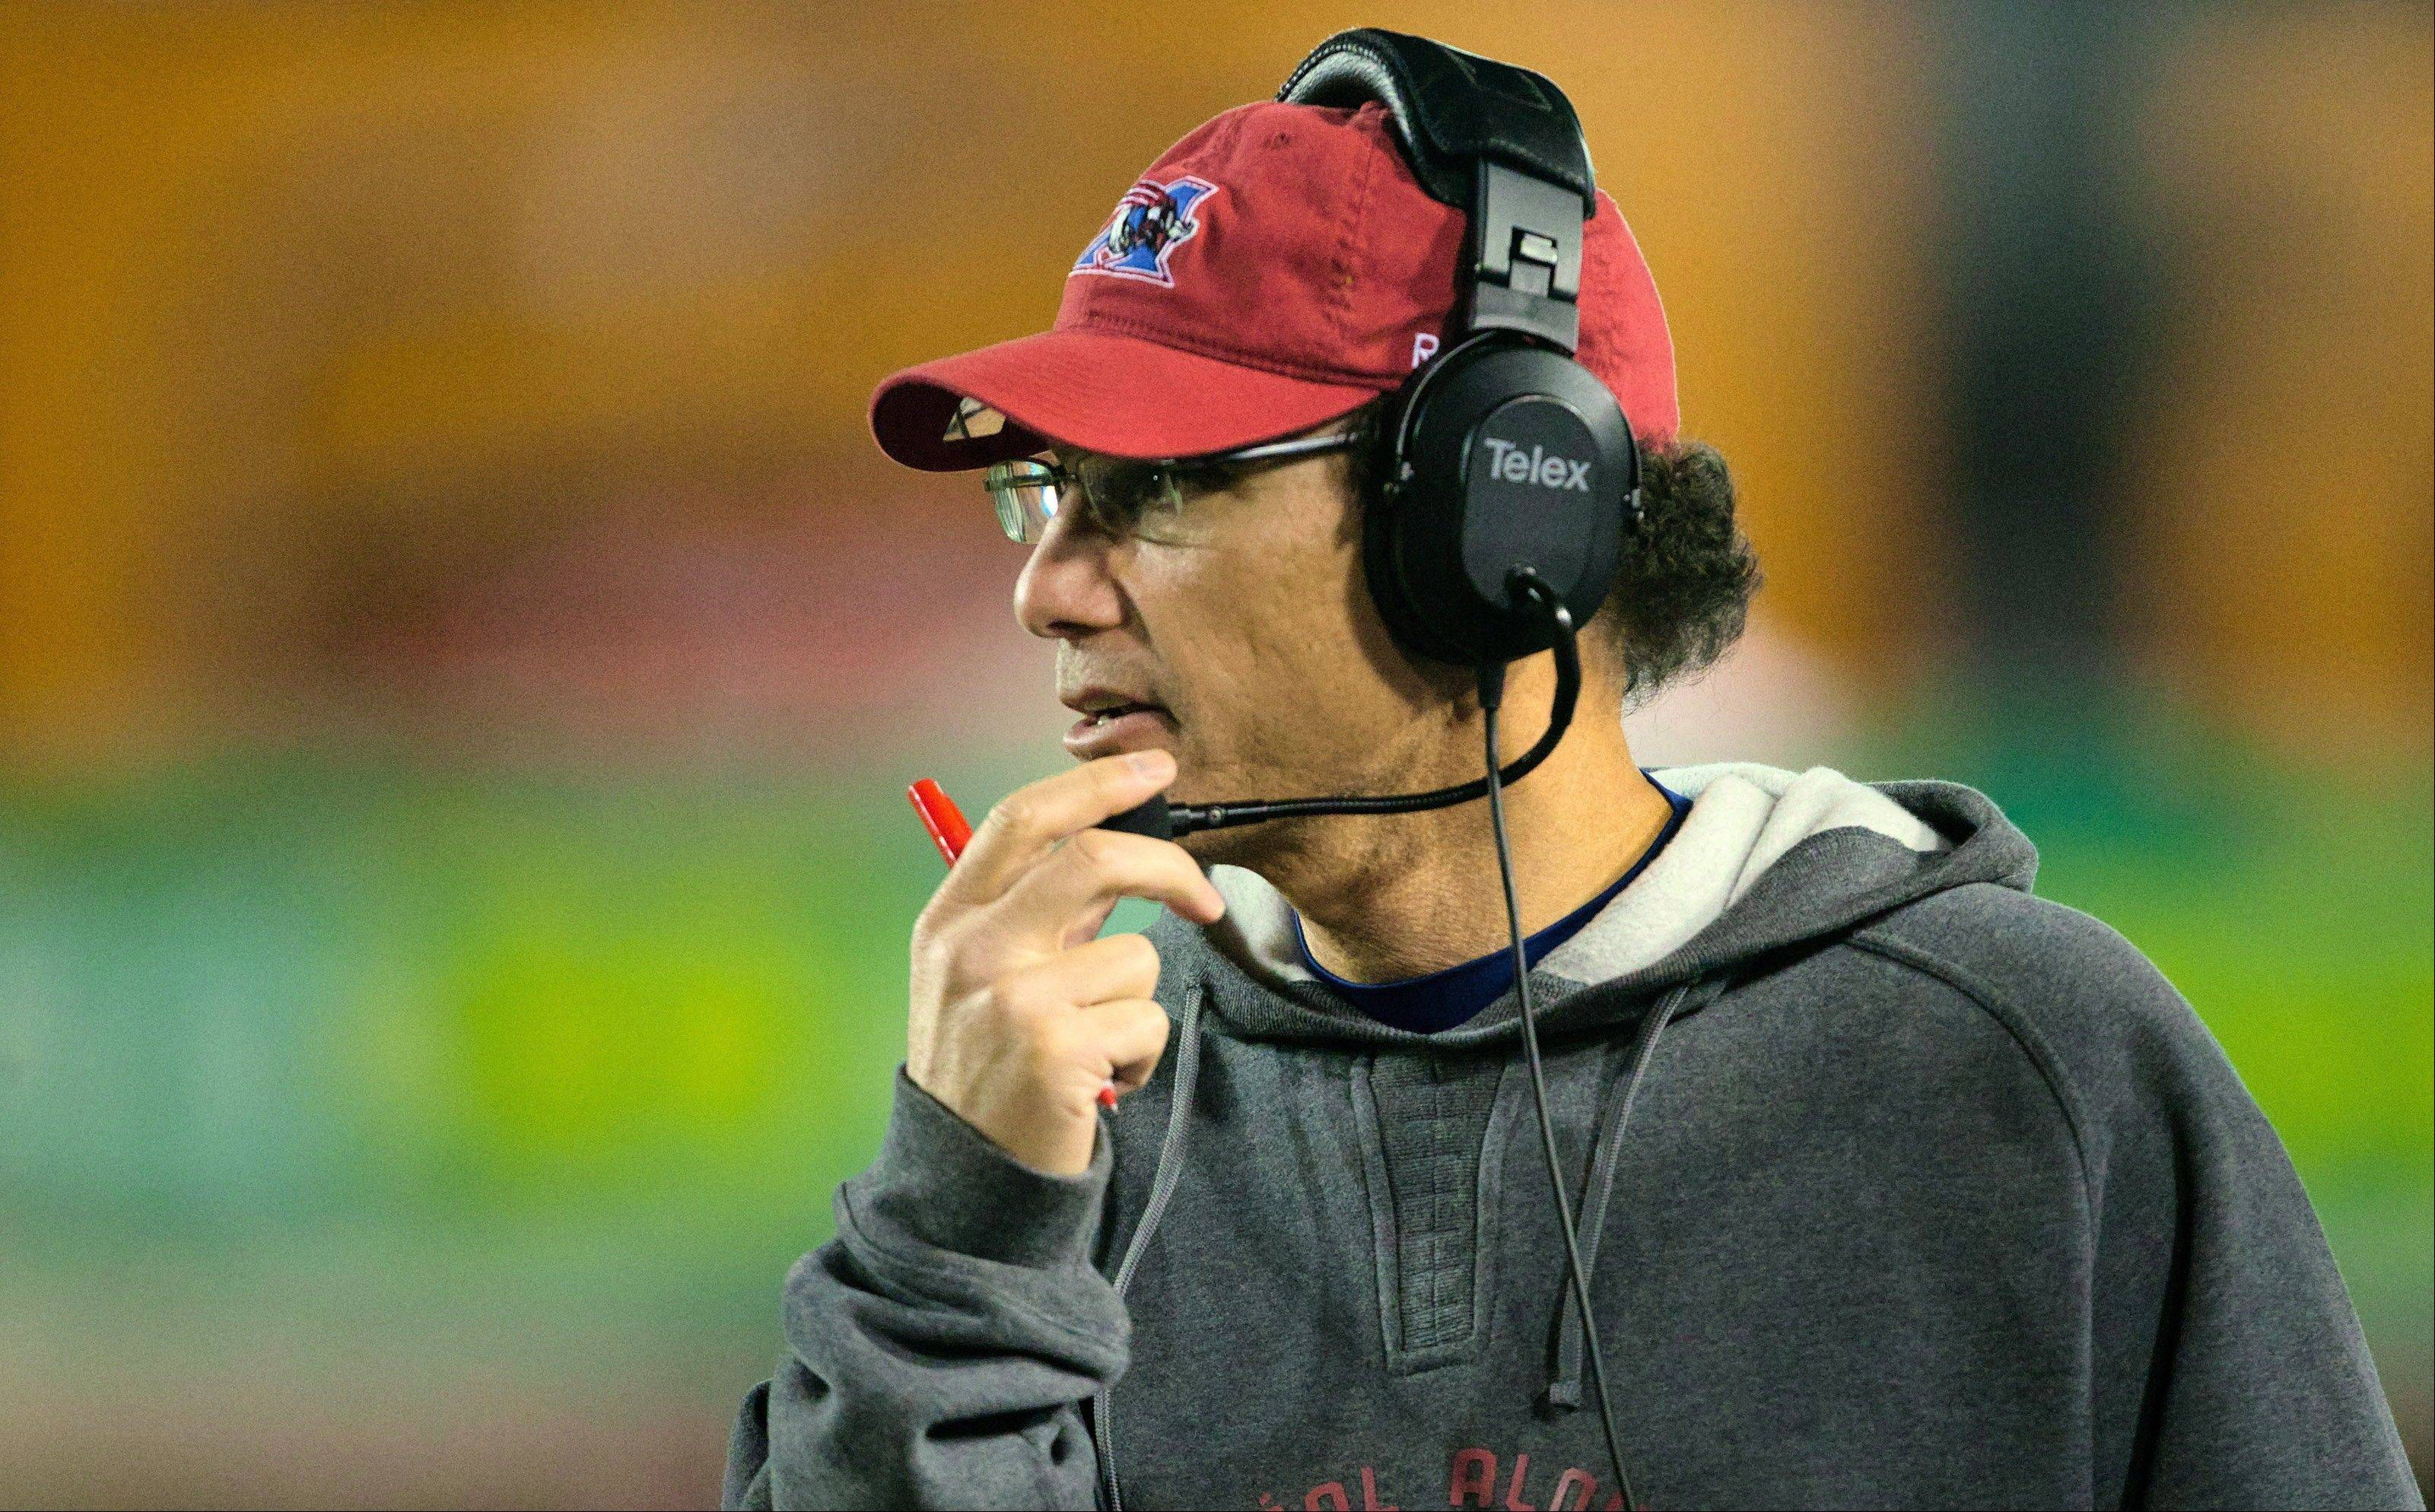 After winning two CFL titles with the Montreal Alouettes, Marc Trestman was hired by the Chicago Bears on Wednesday to be their head coach.